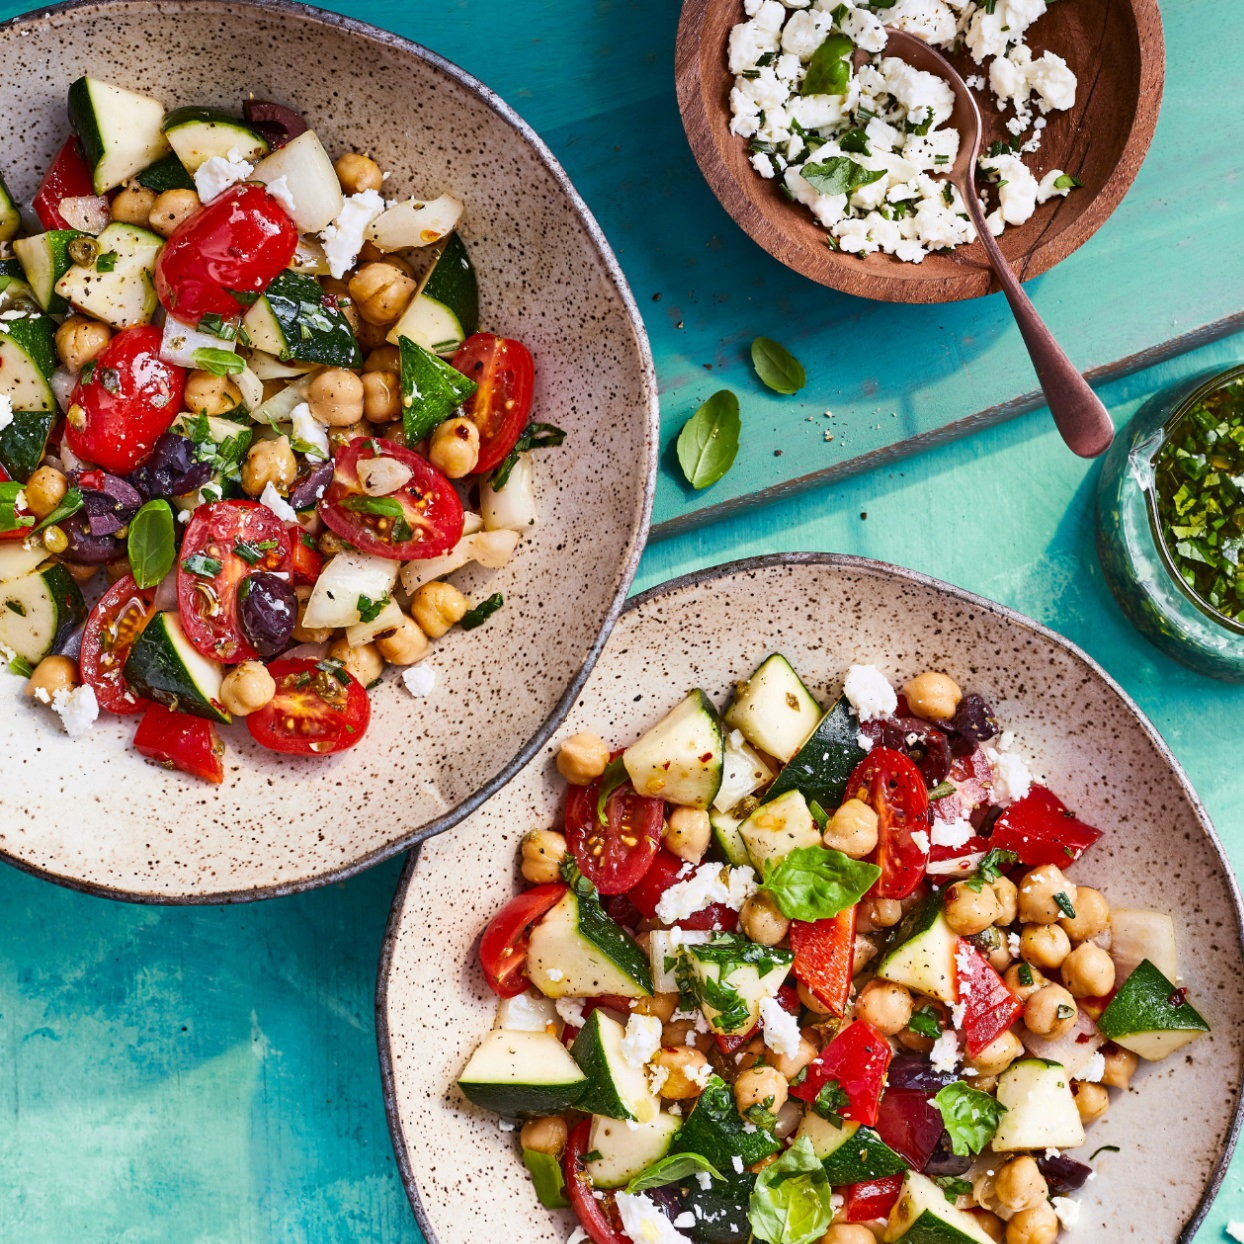 zucchini and chickpea salad on plates